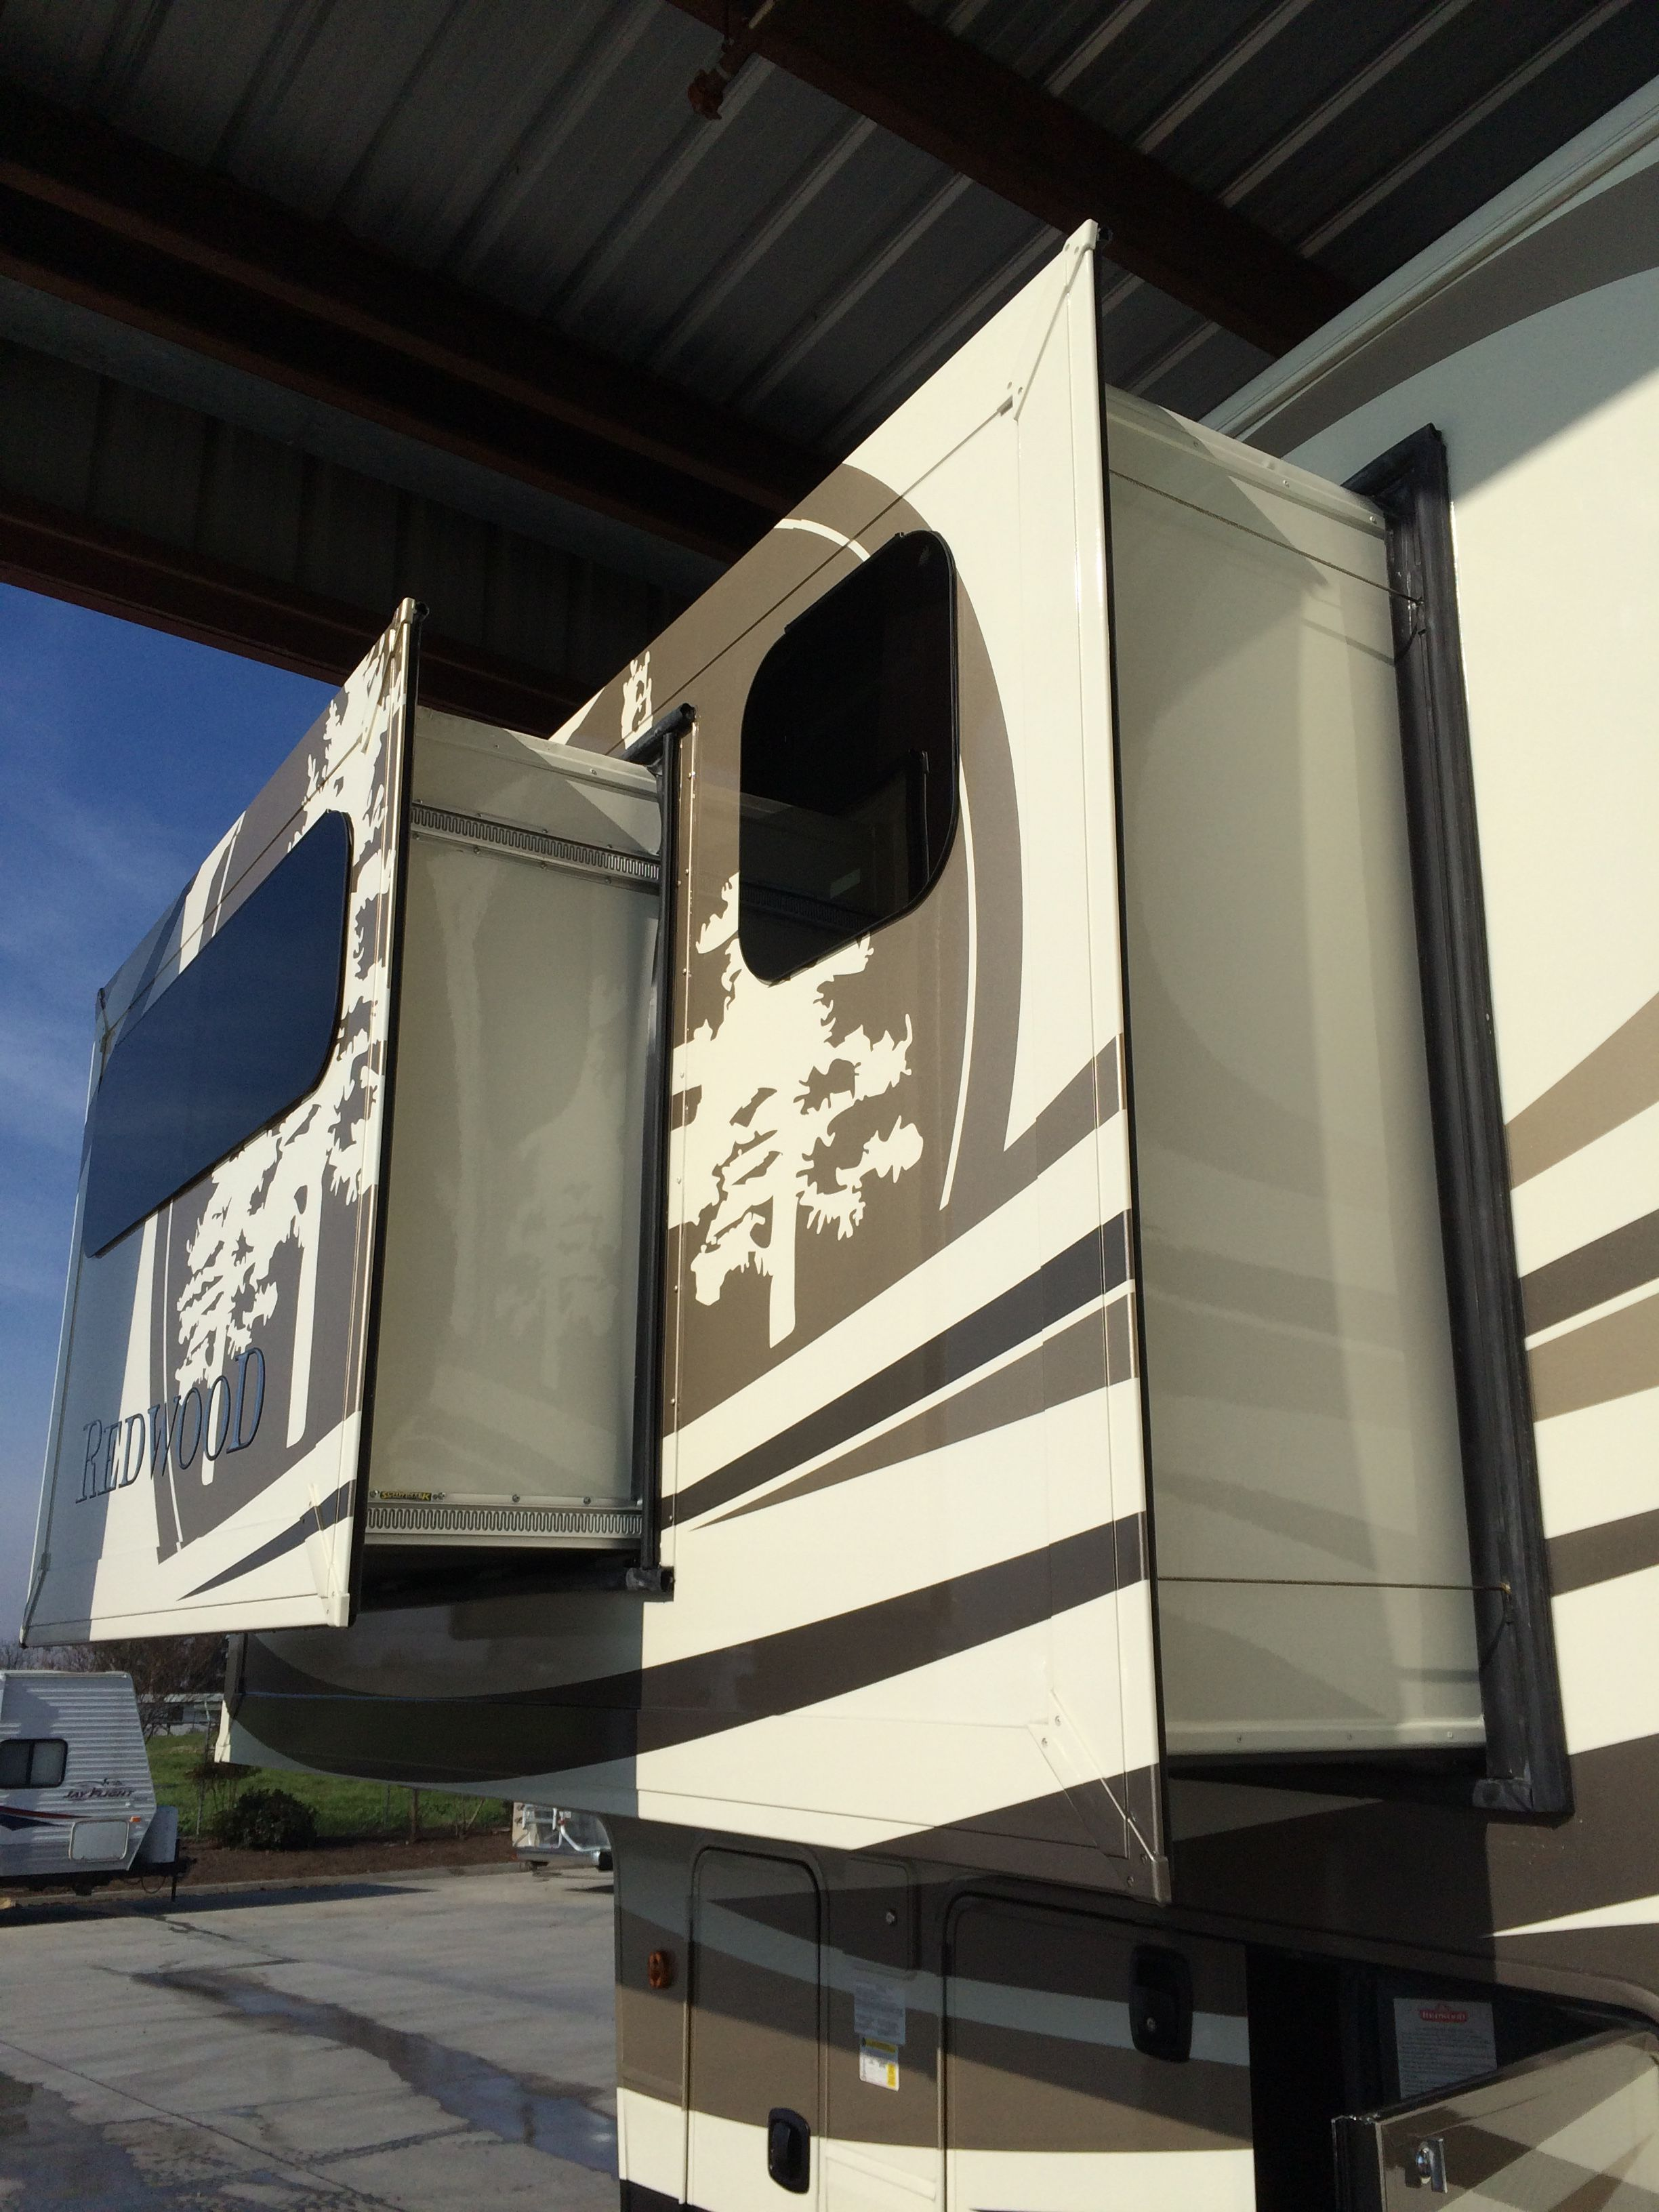 New 2015 Residential Redwood 5th Wheel 38gk With A Slideout Within